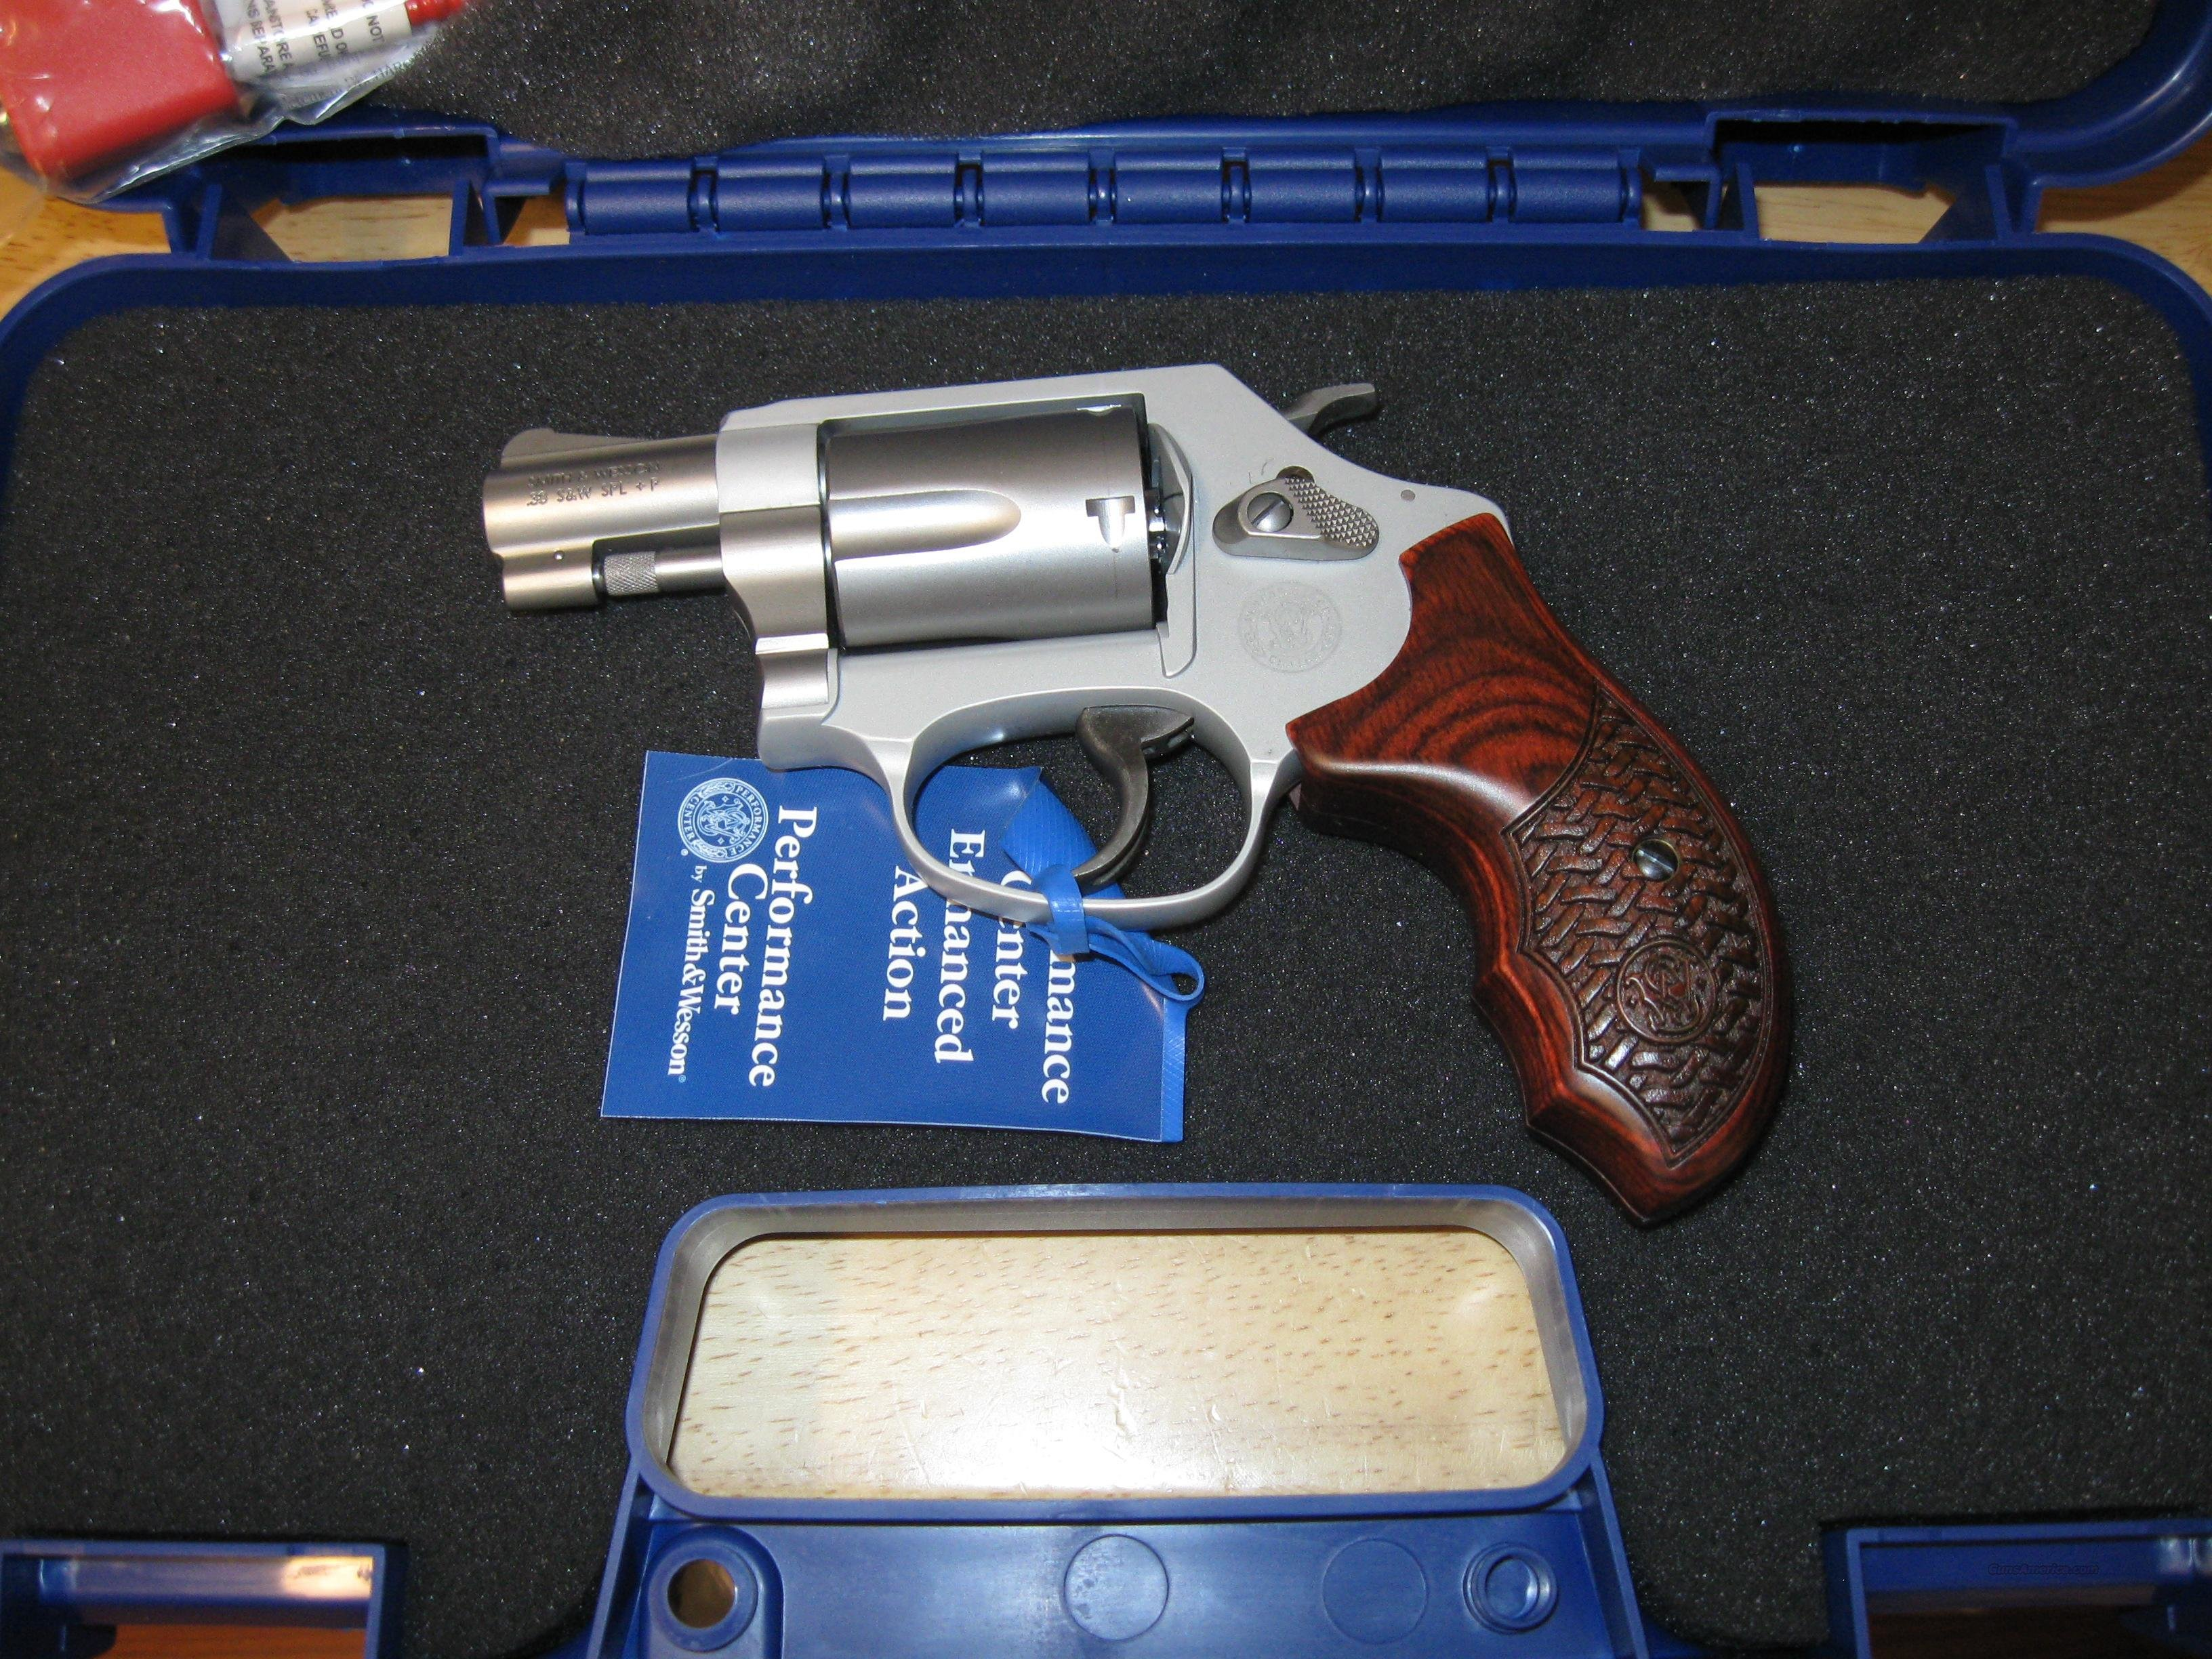 "Smith & Wesson 637 Performance Center Revolver 170349, 38 Special, 1-7/8"", Basketweave Wood Grips, Matte Silver Finish, TALO EXCLUSIVE  Guns > Pistols > Smith & Wesson Revolvers > Performance Center"